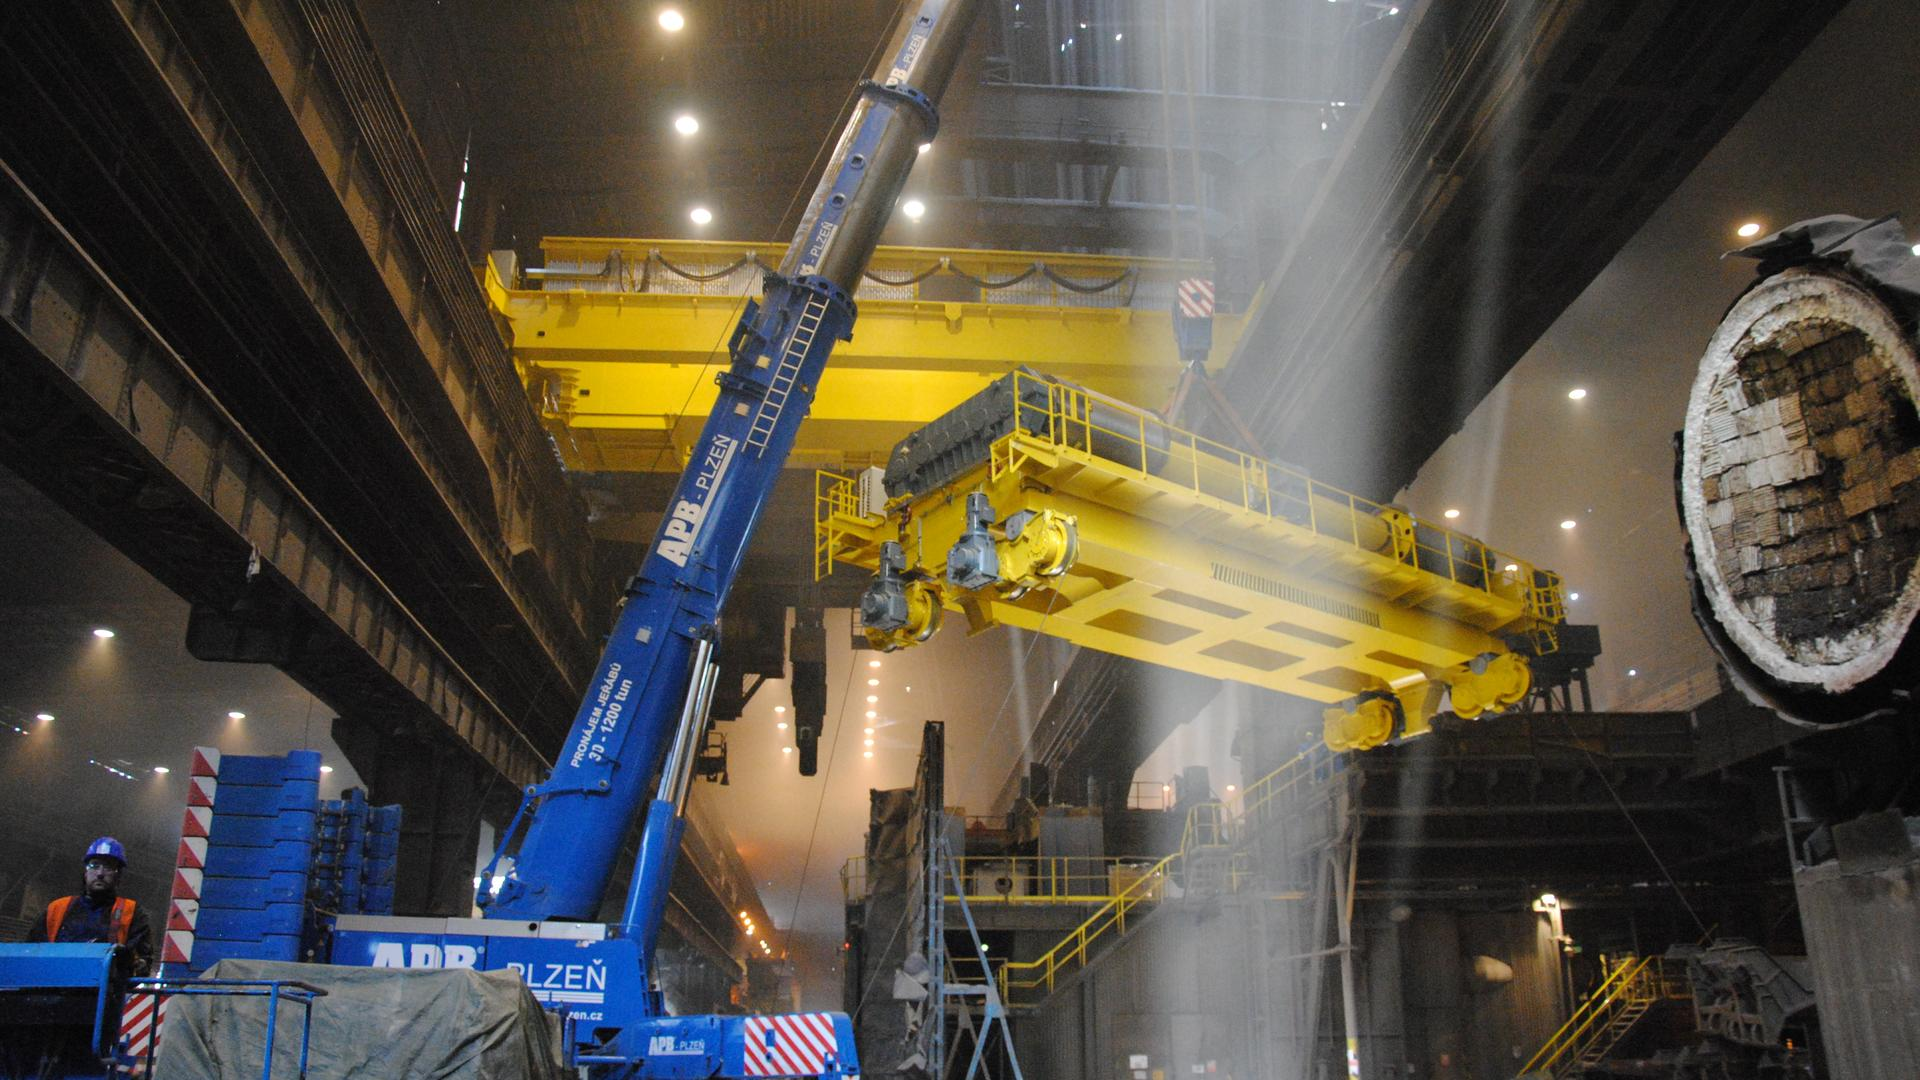 Cranes and lifting mechanisms